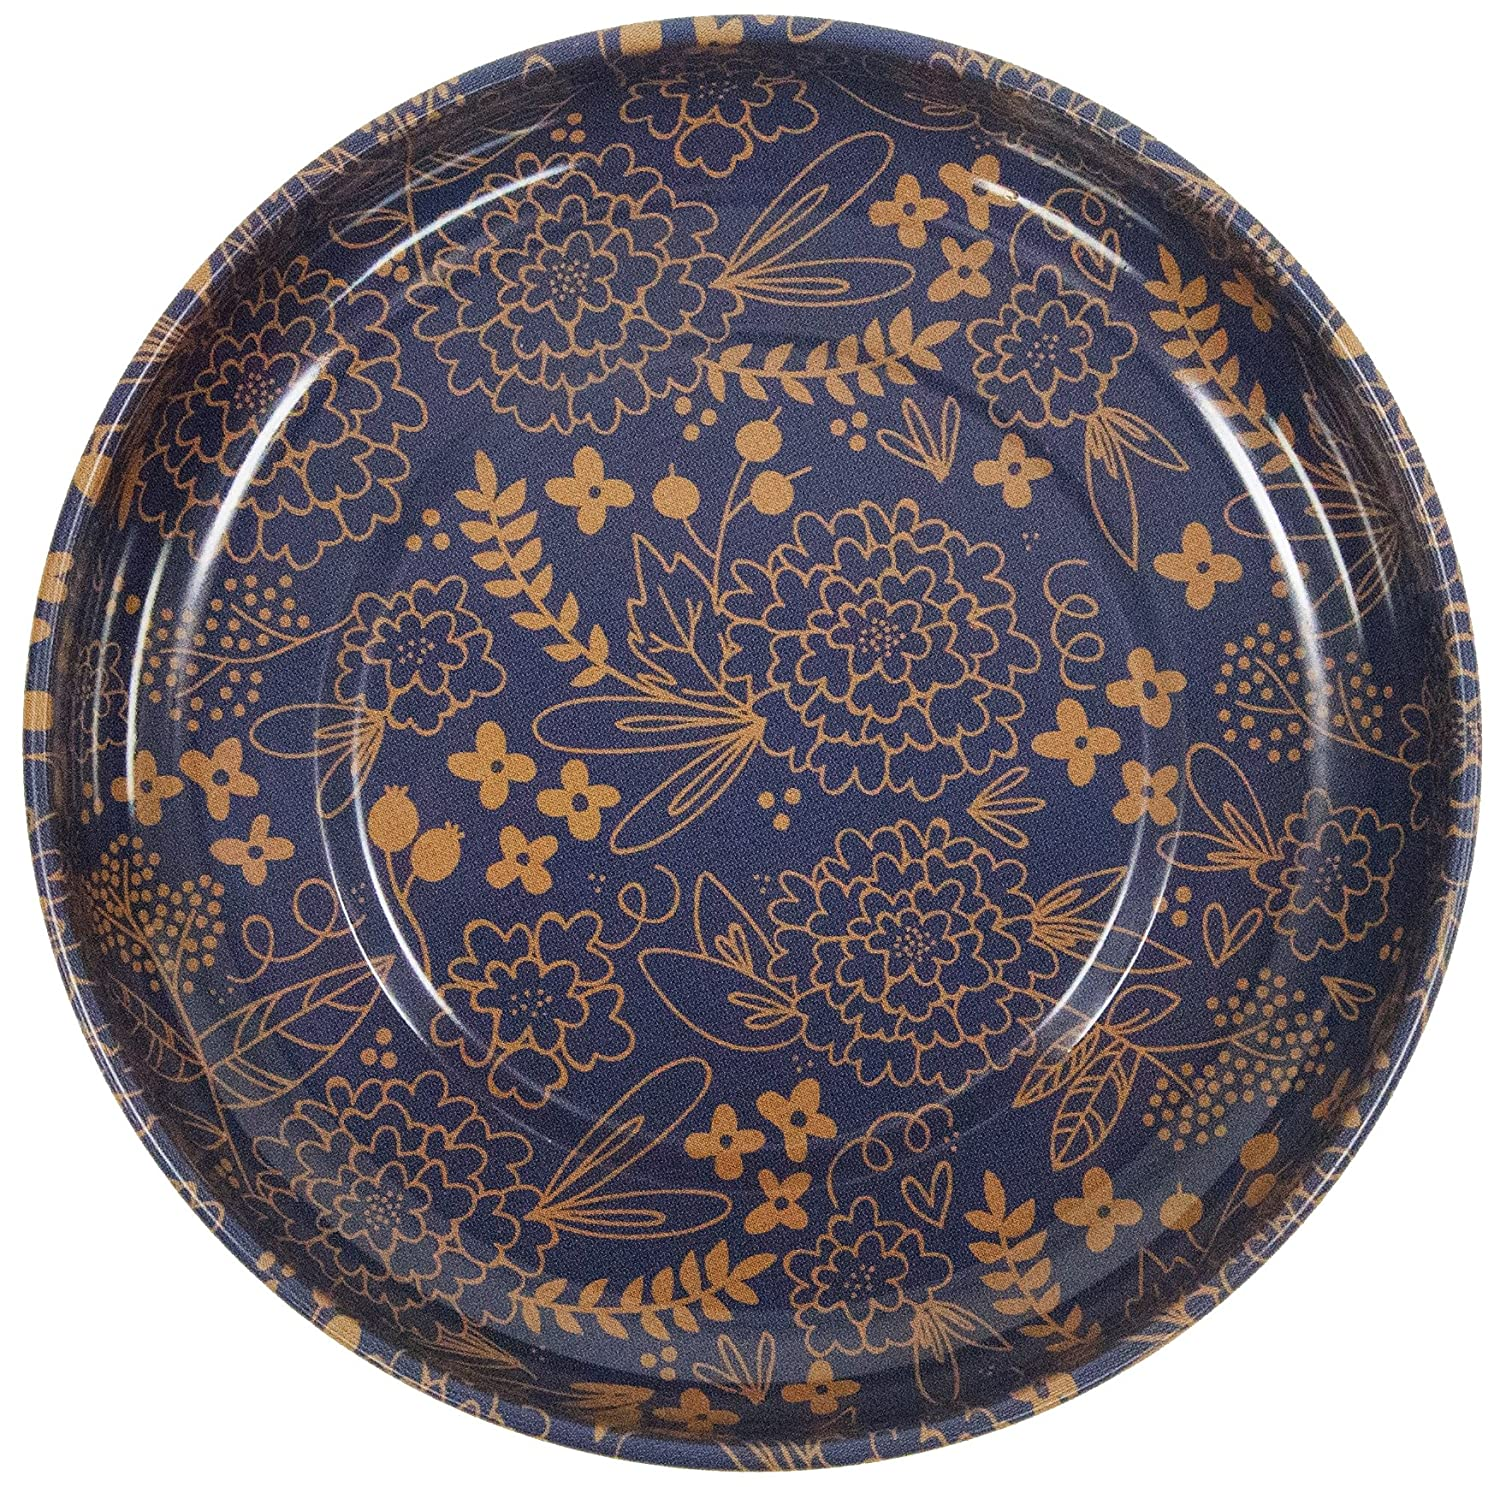 Pattern Designed by My Minds Eye STMB-9658 Sew Together Riley-Blake Designs Limited-Edition 4 Blue /& Gold Magnetic Pin Bowl